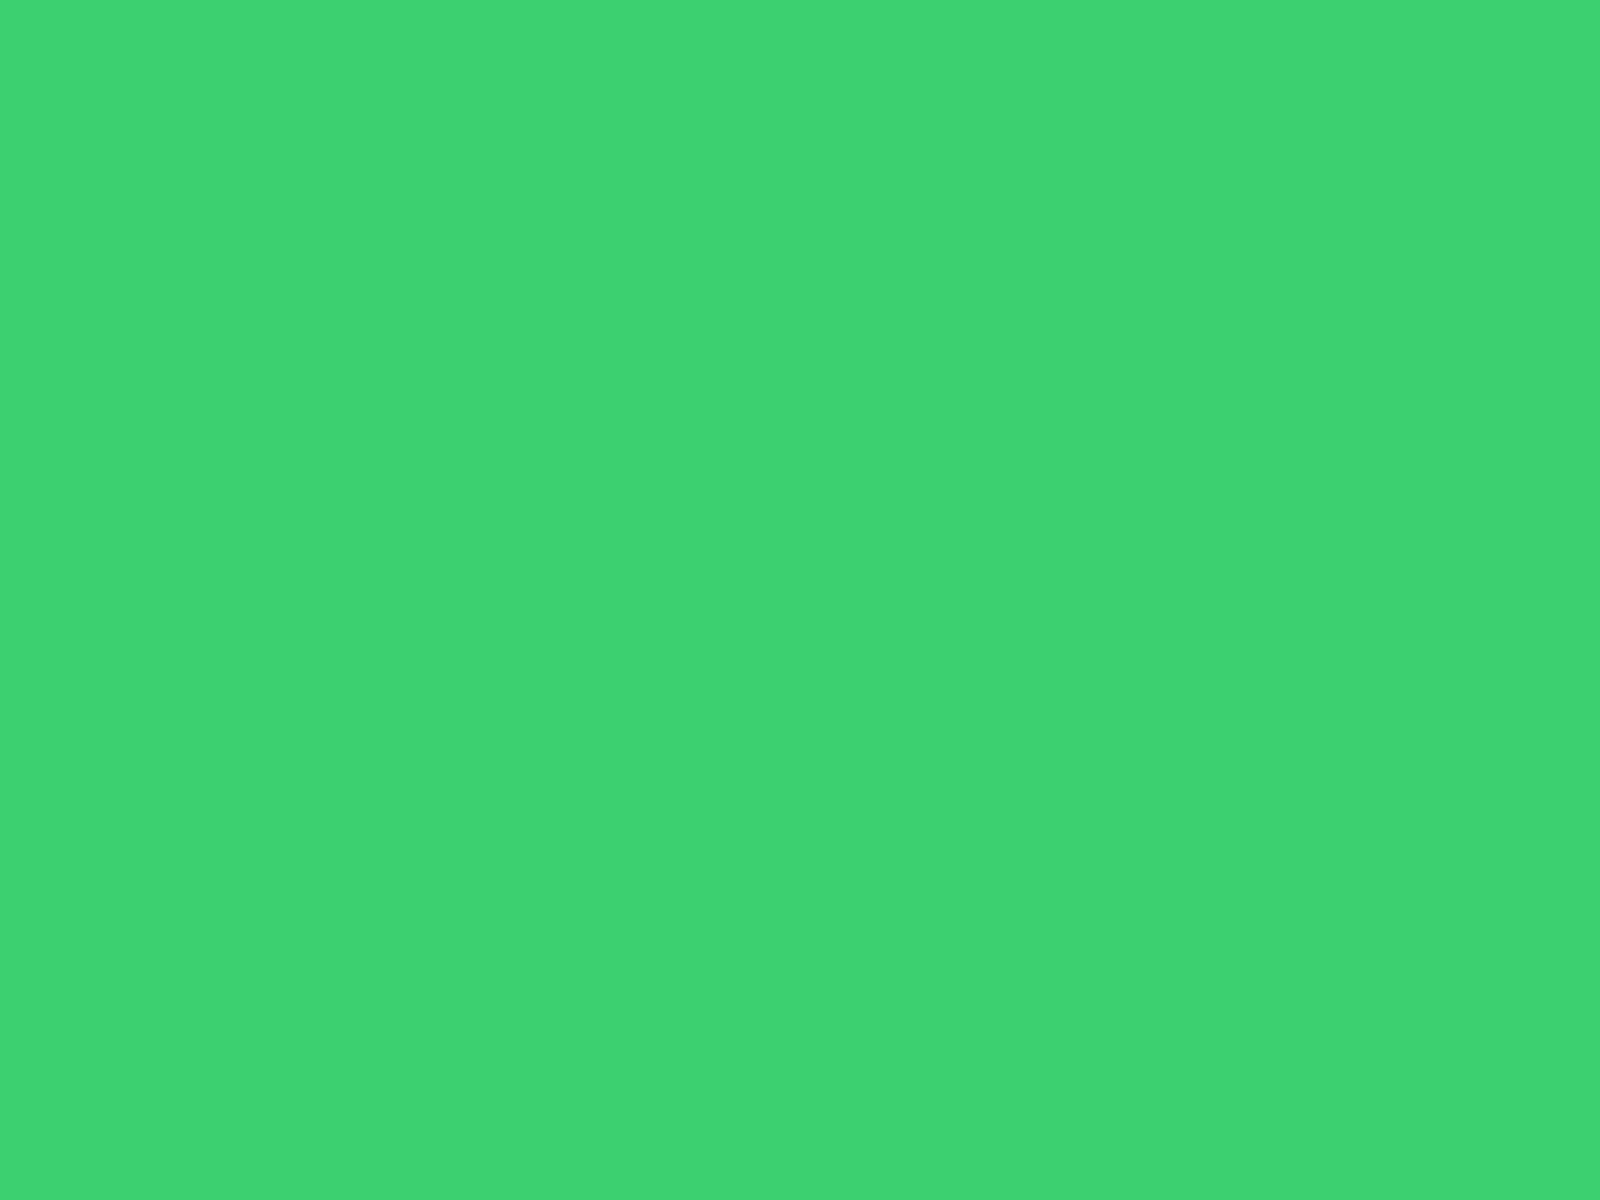 1600x1200 UFO Green Solid Color Background